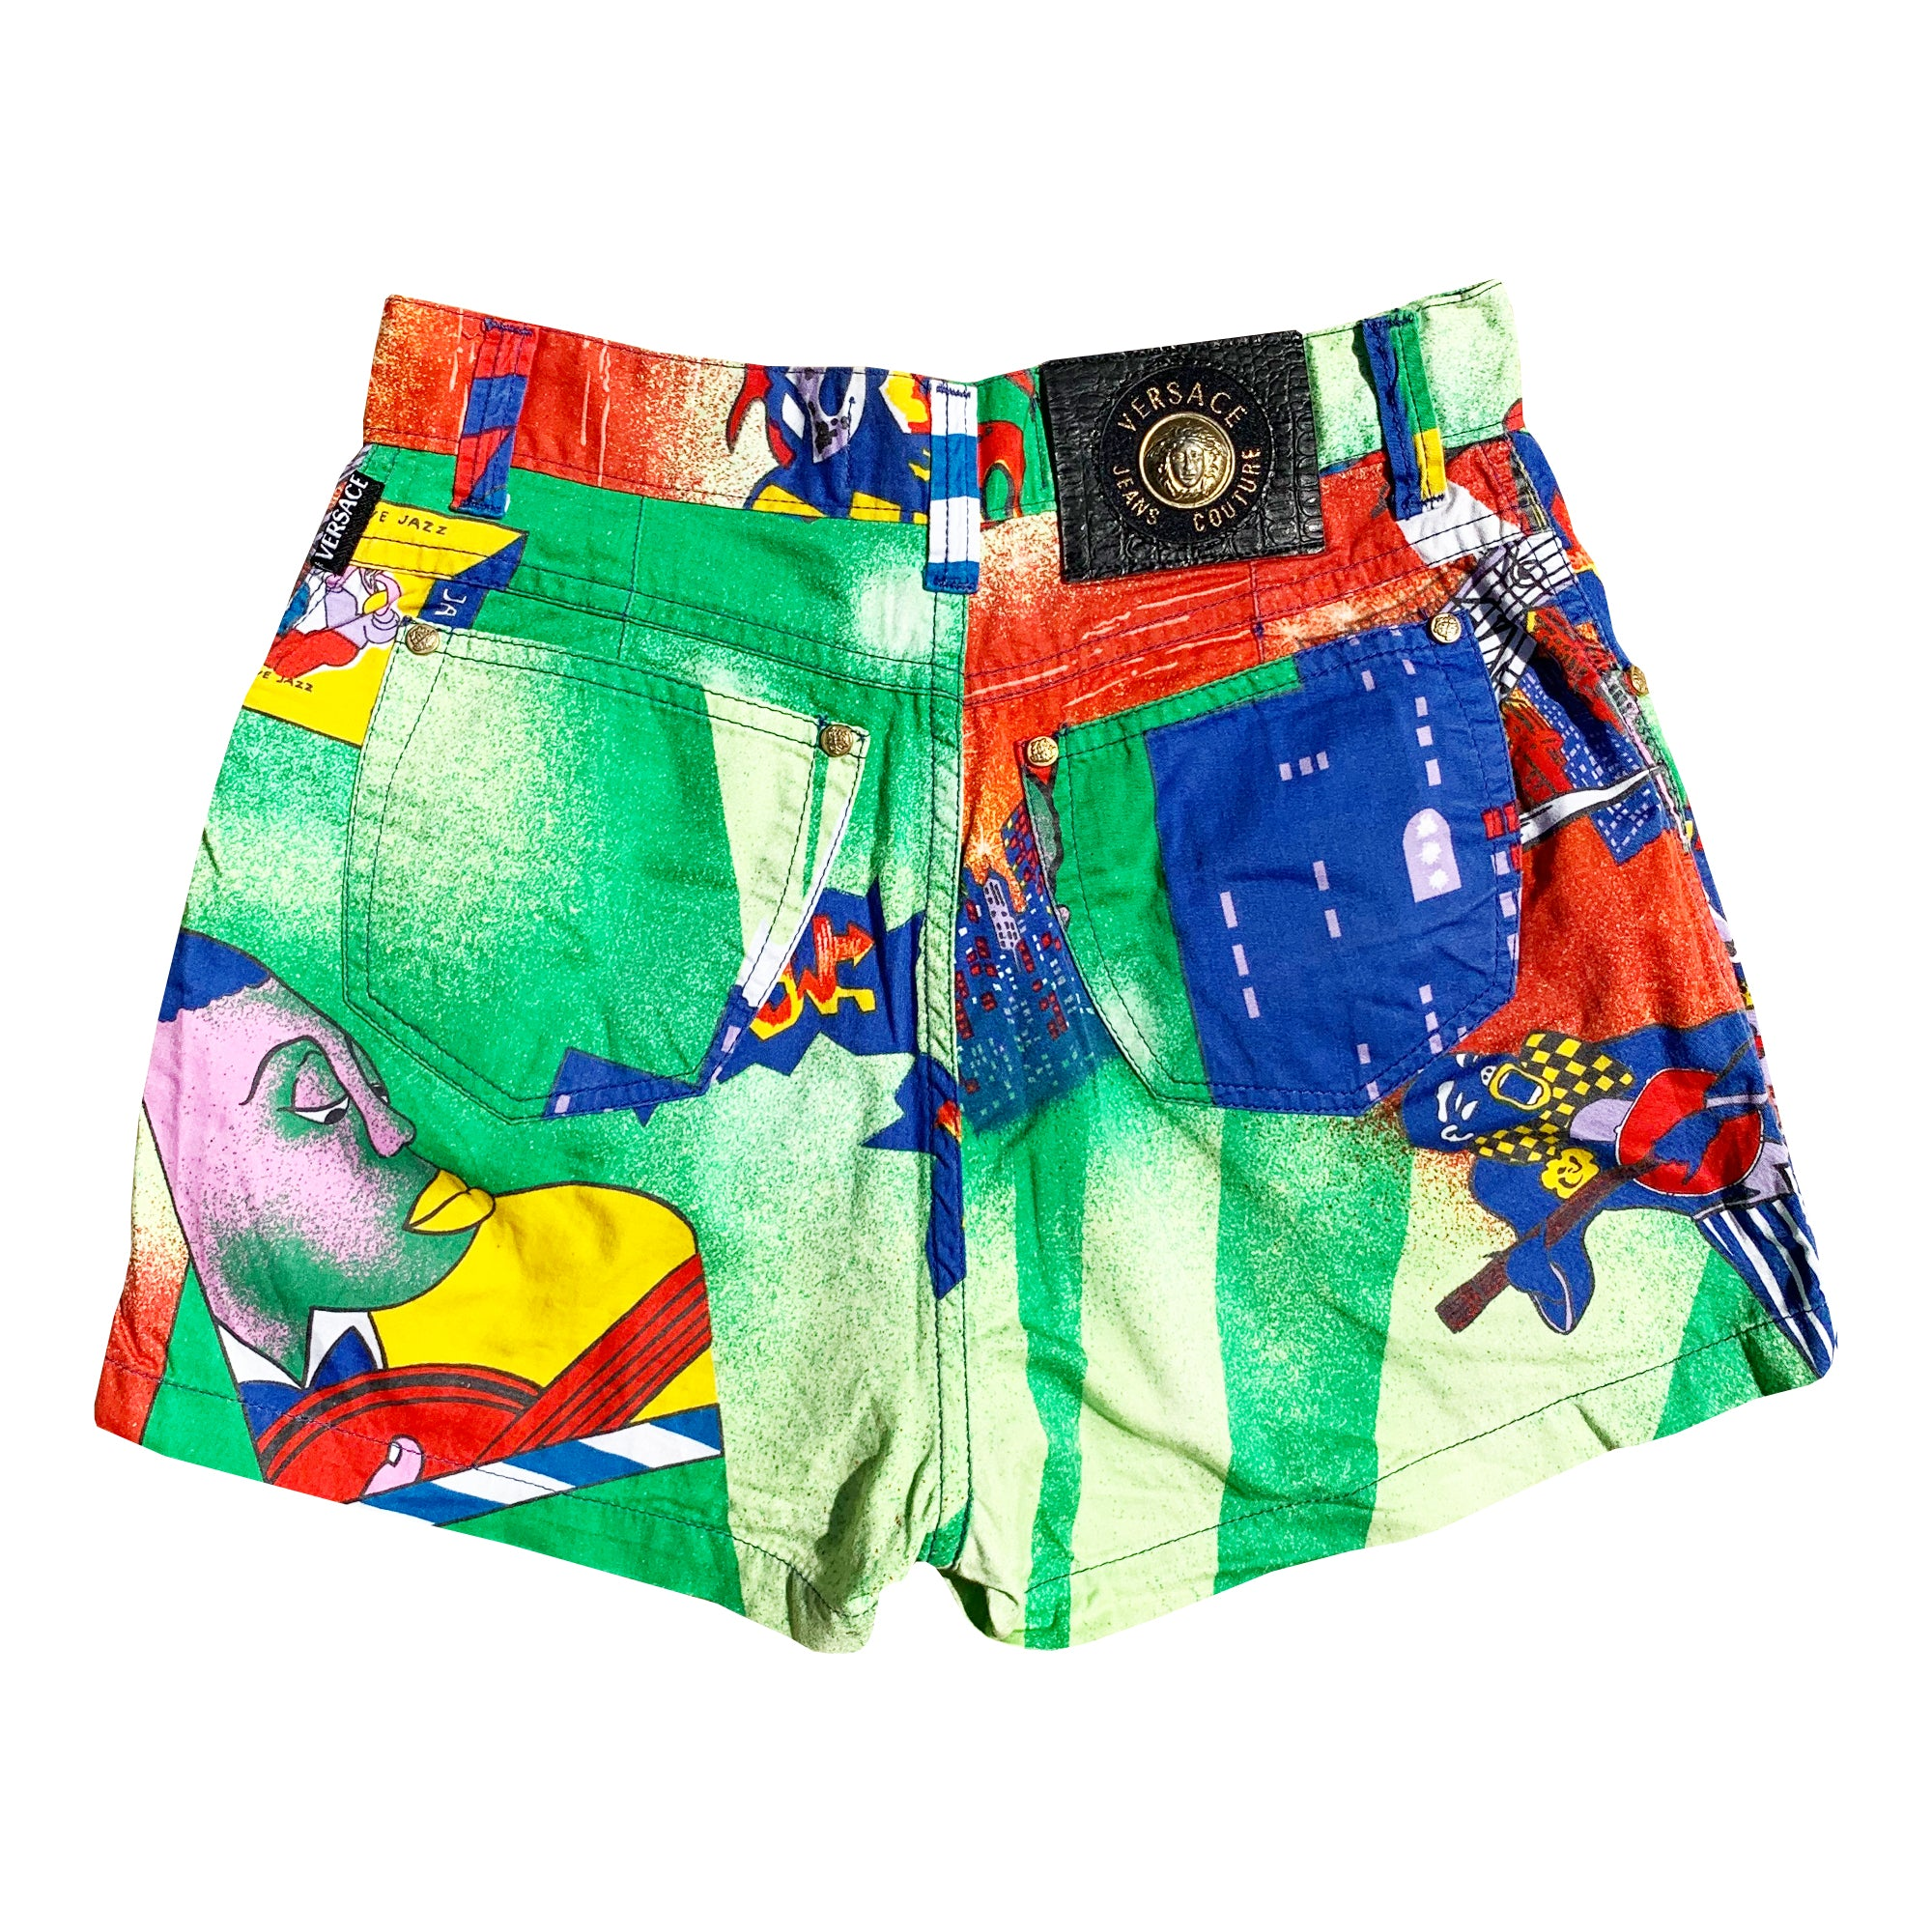 Vintage Versace Shorts (Multi) UK 10